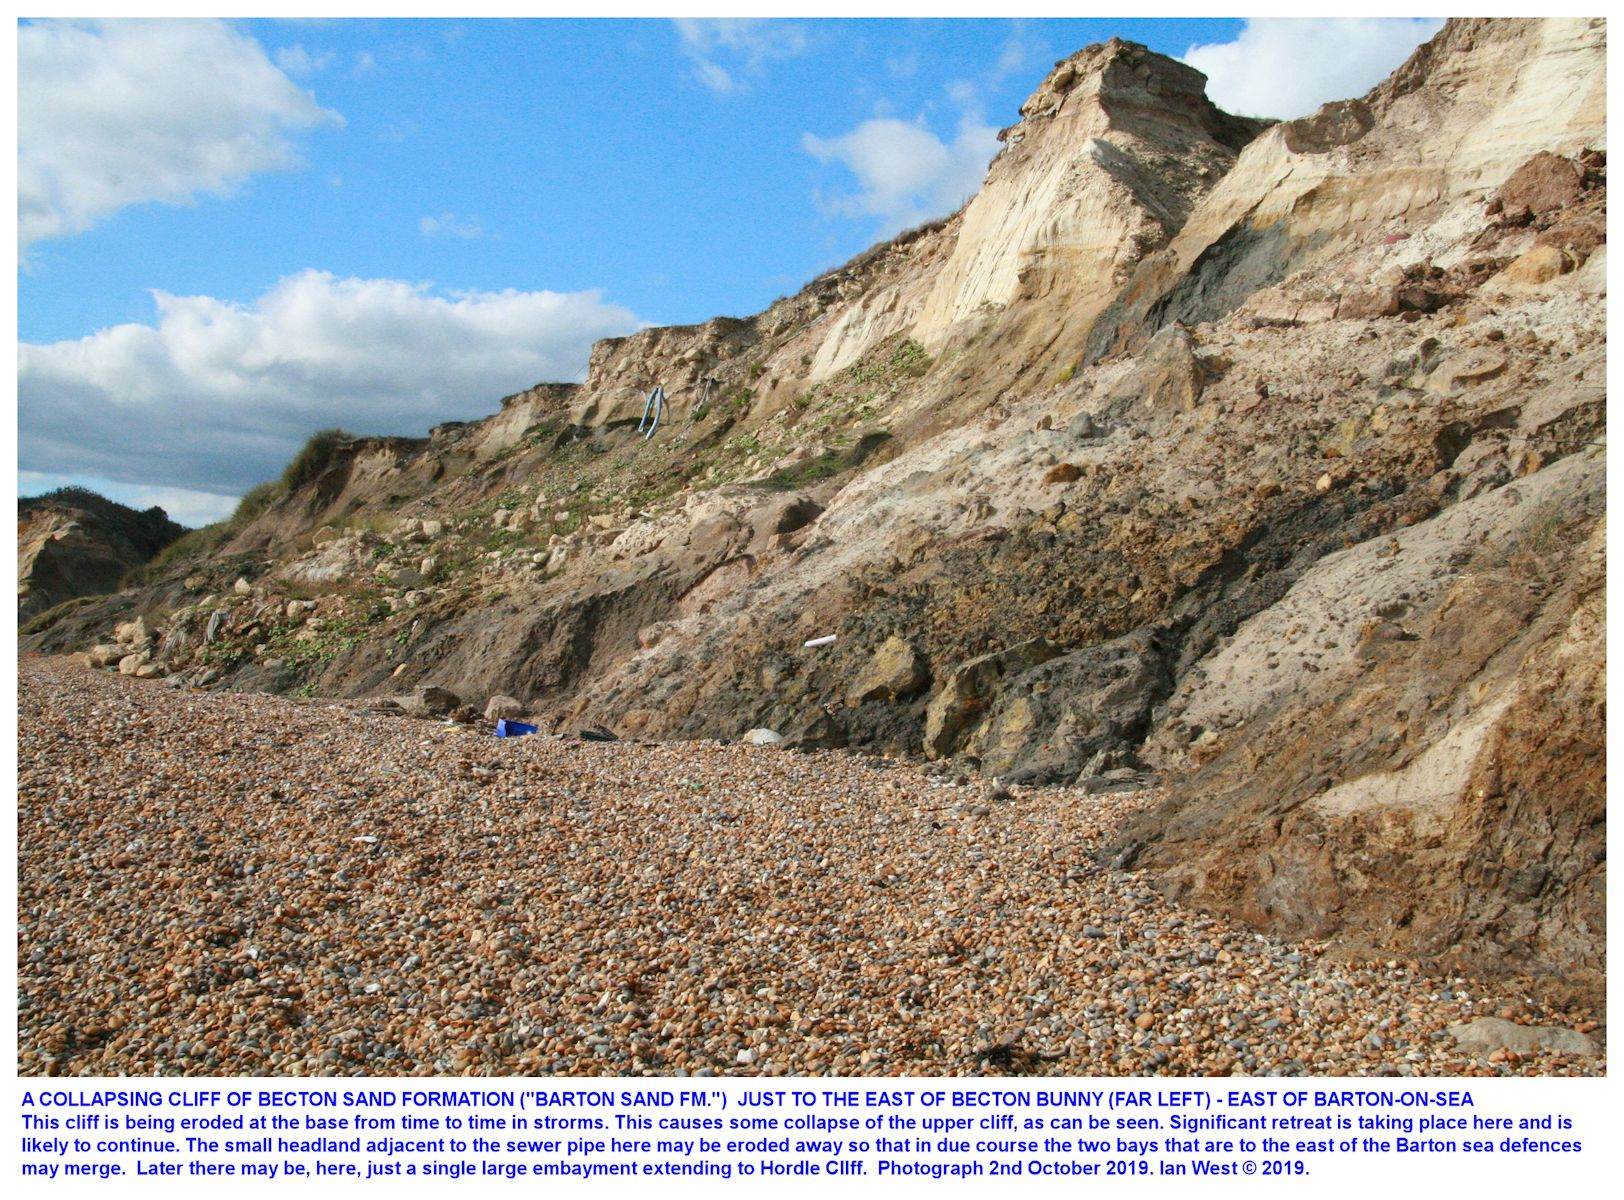 Erosion taking place at the coast just east of Becton Bunny, Hampshire, southern England, 2nd October 2019